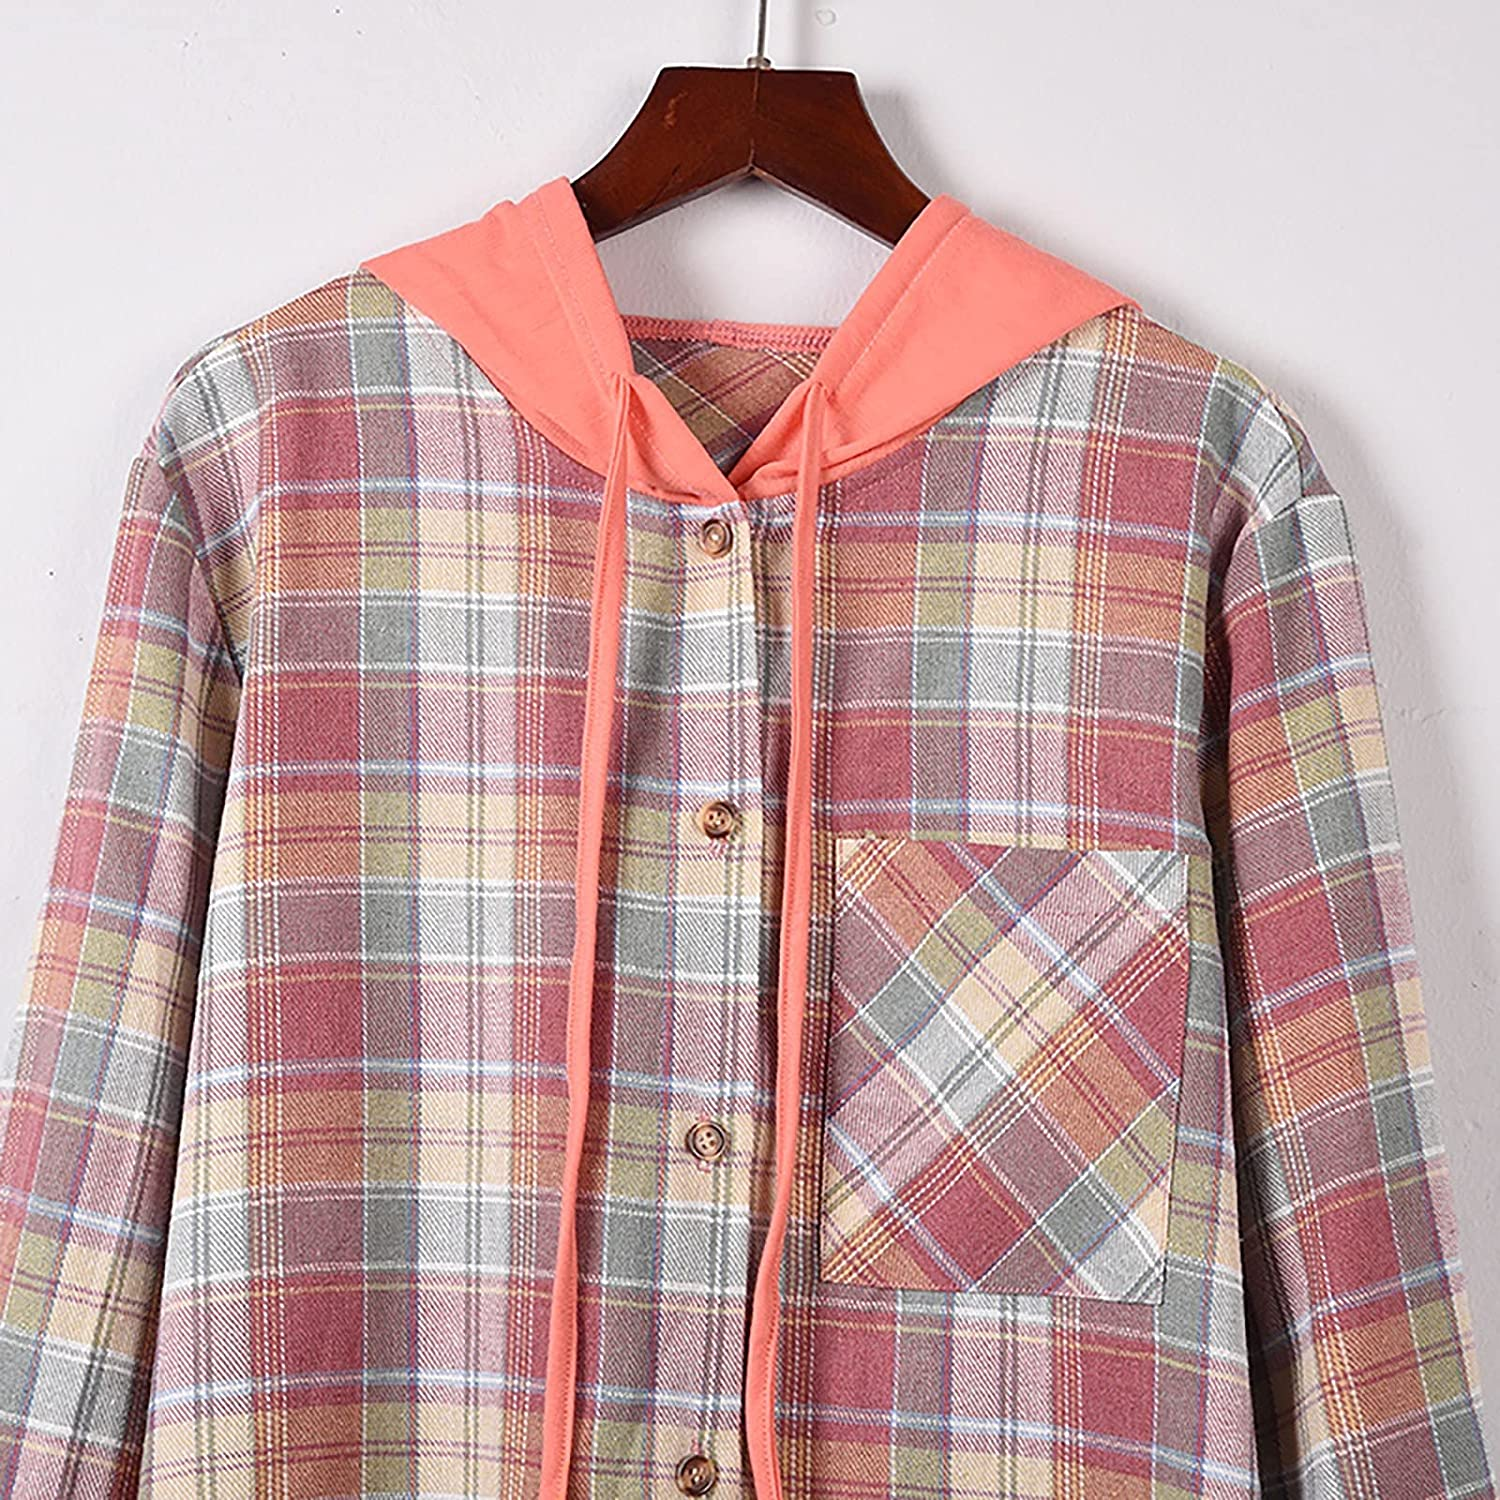 Women's Long Sleeves Open Front Plaid Drawstring Cardigan Coat with Pockets Ladys Color Block Striped Casual Buttons Outwear